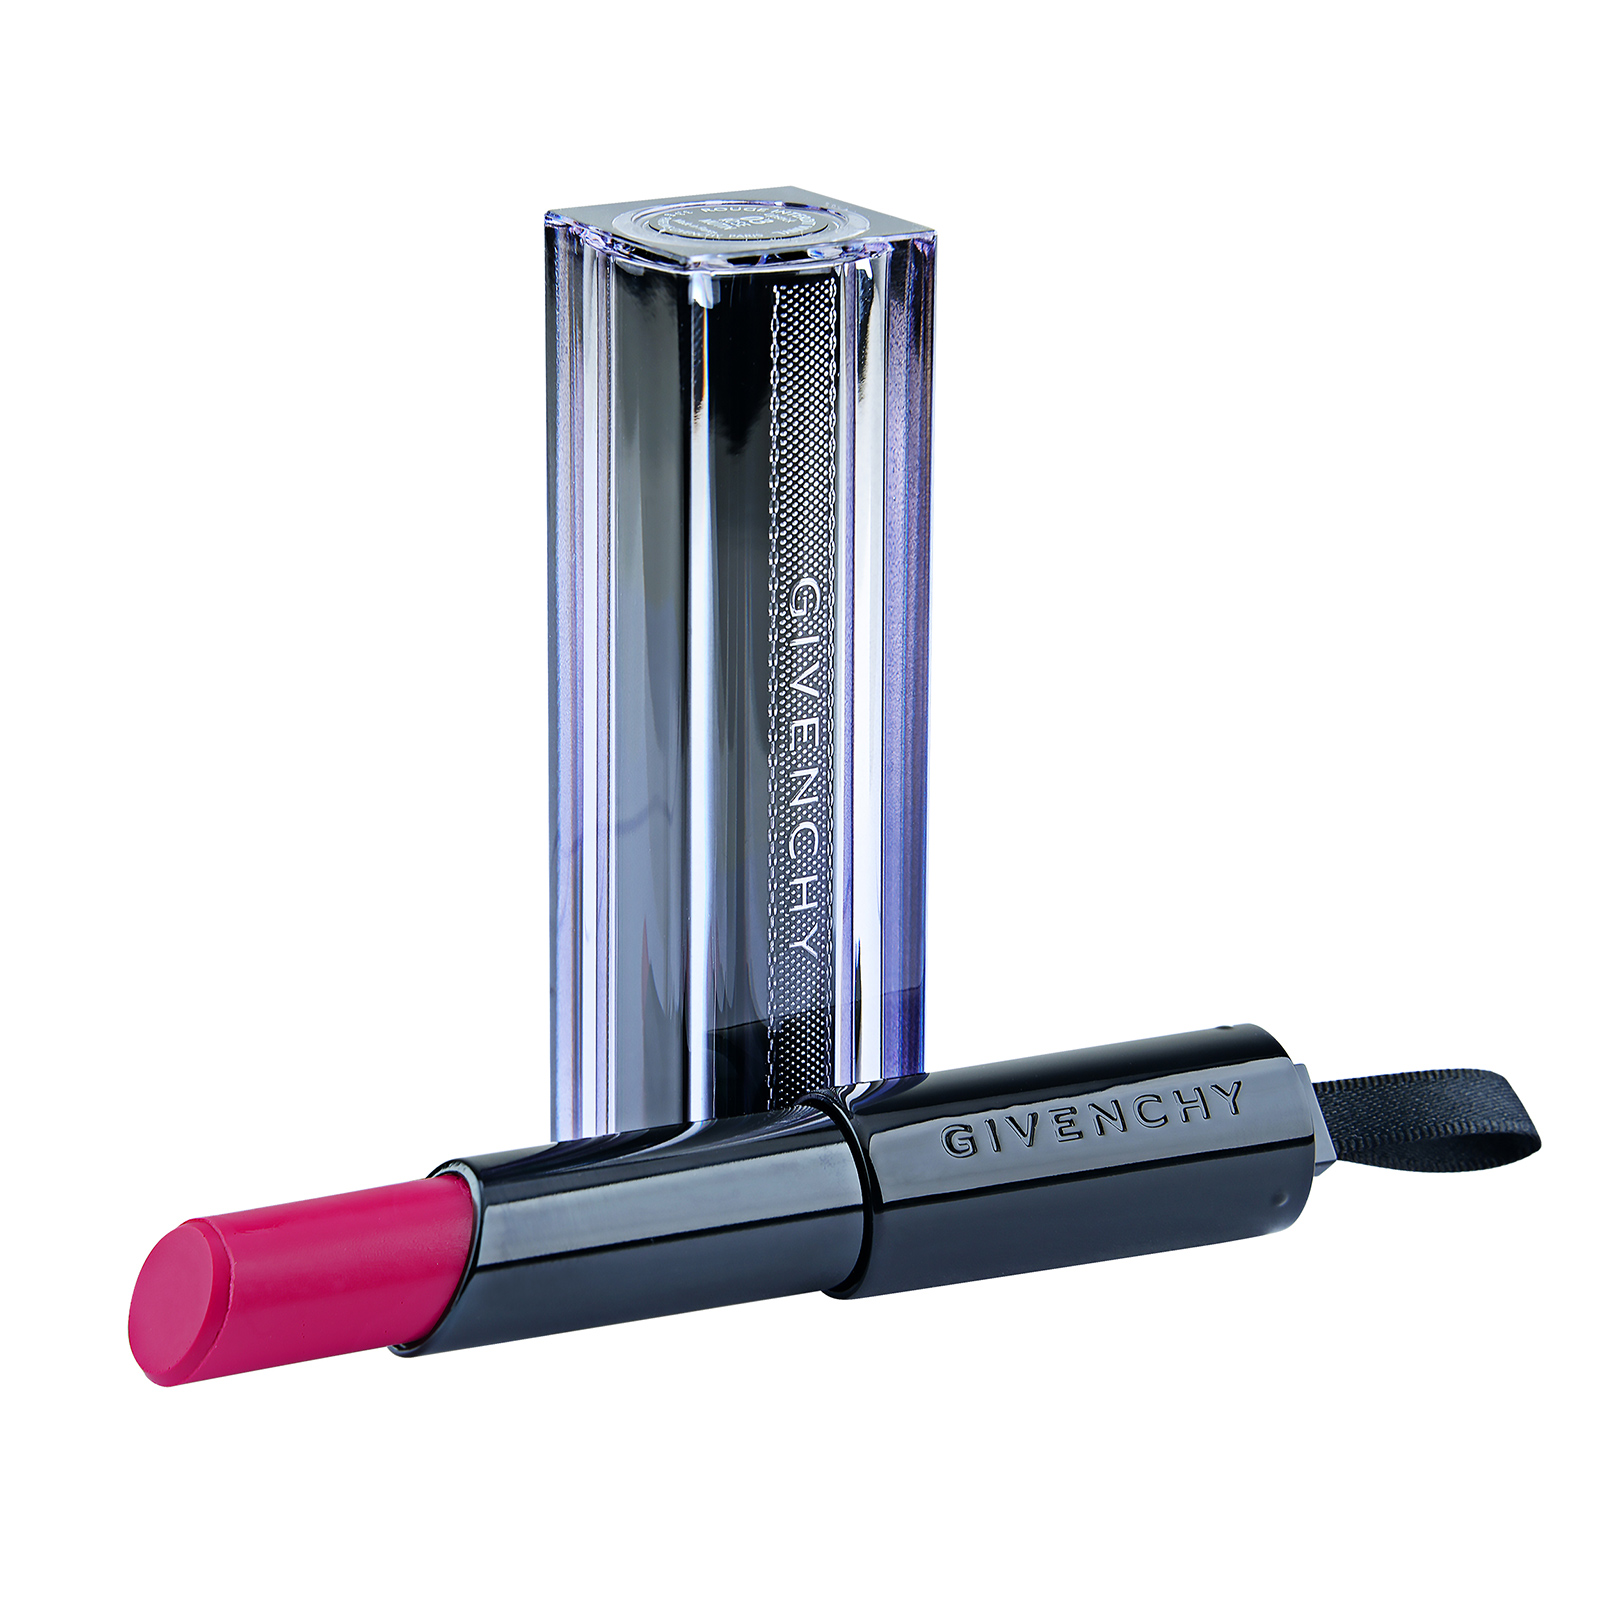 Givenchy  Rouge Interdit Vinyl Extreme Shine Lipstick Illicit Color 07 Fuchsia Illicite, 0.11oz, 3.3g